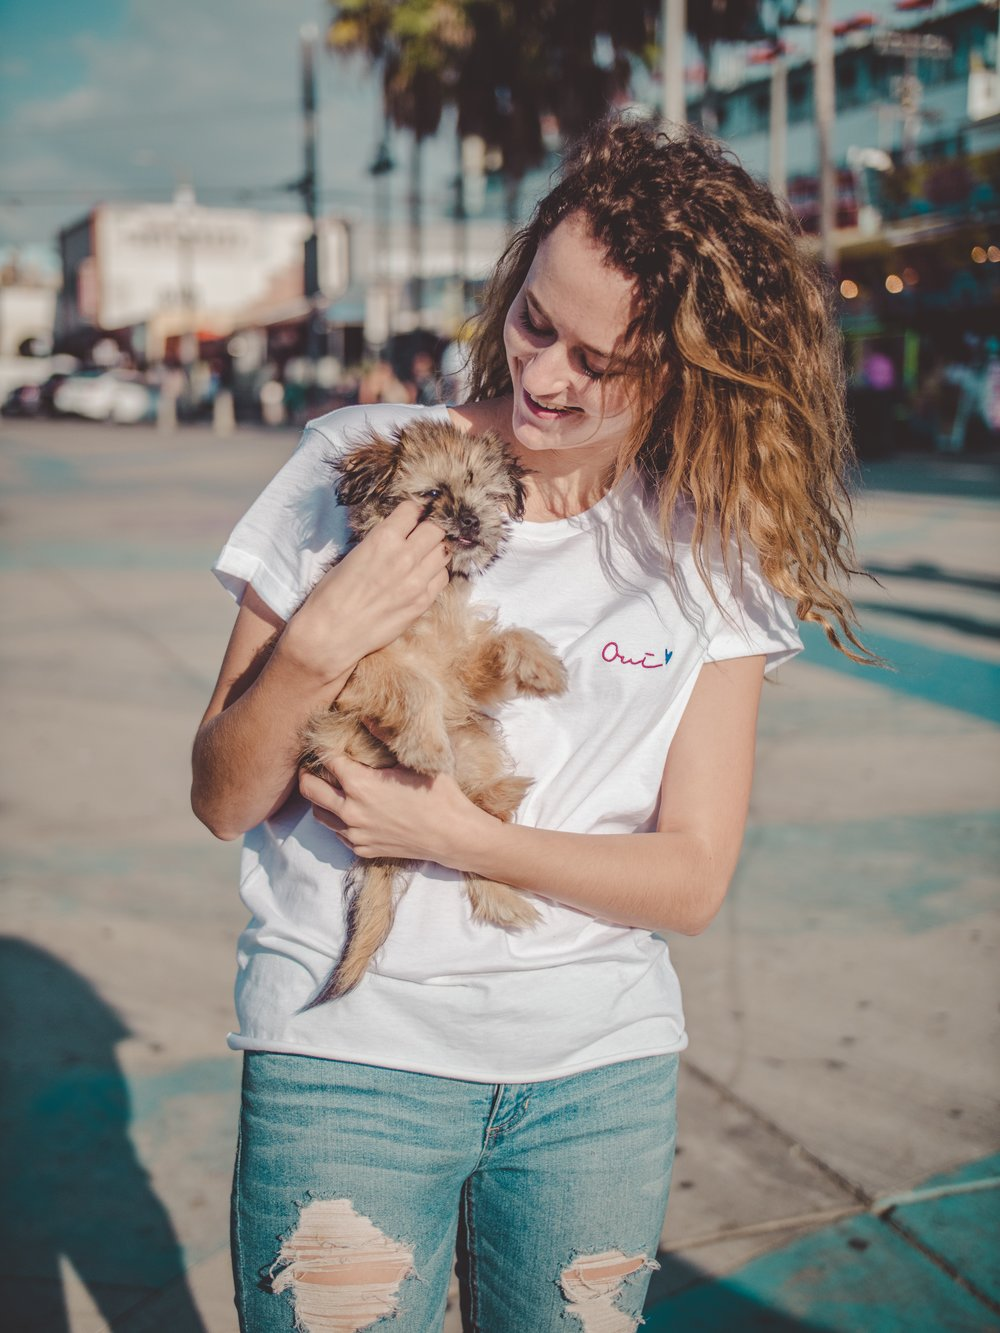 Adopt a puppy in Santa Monica